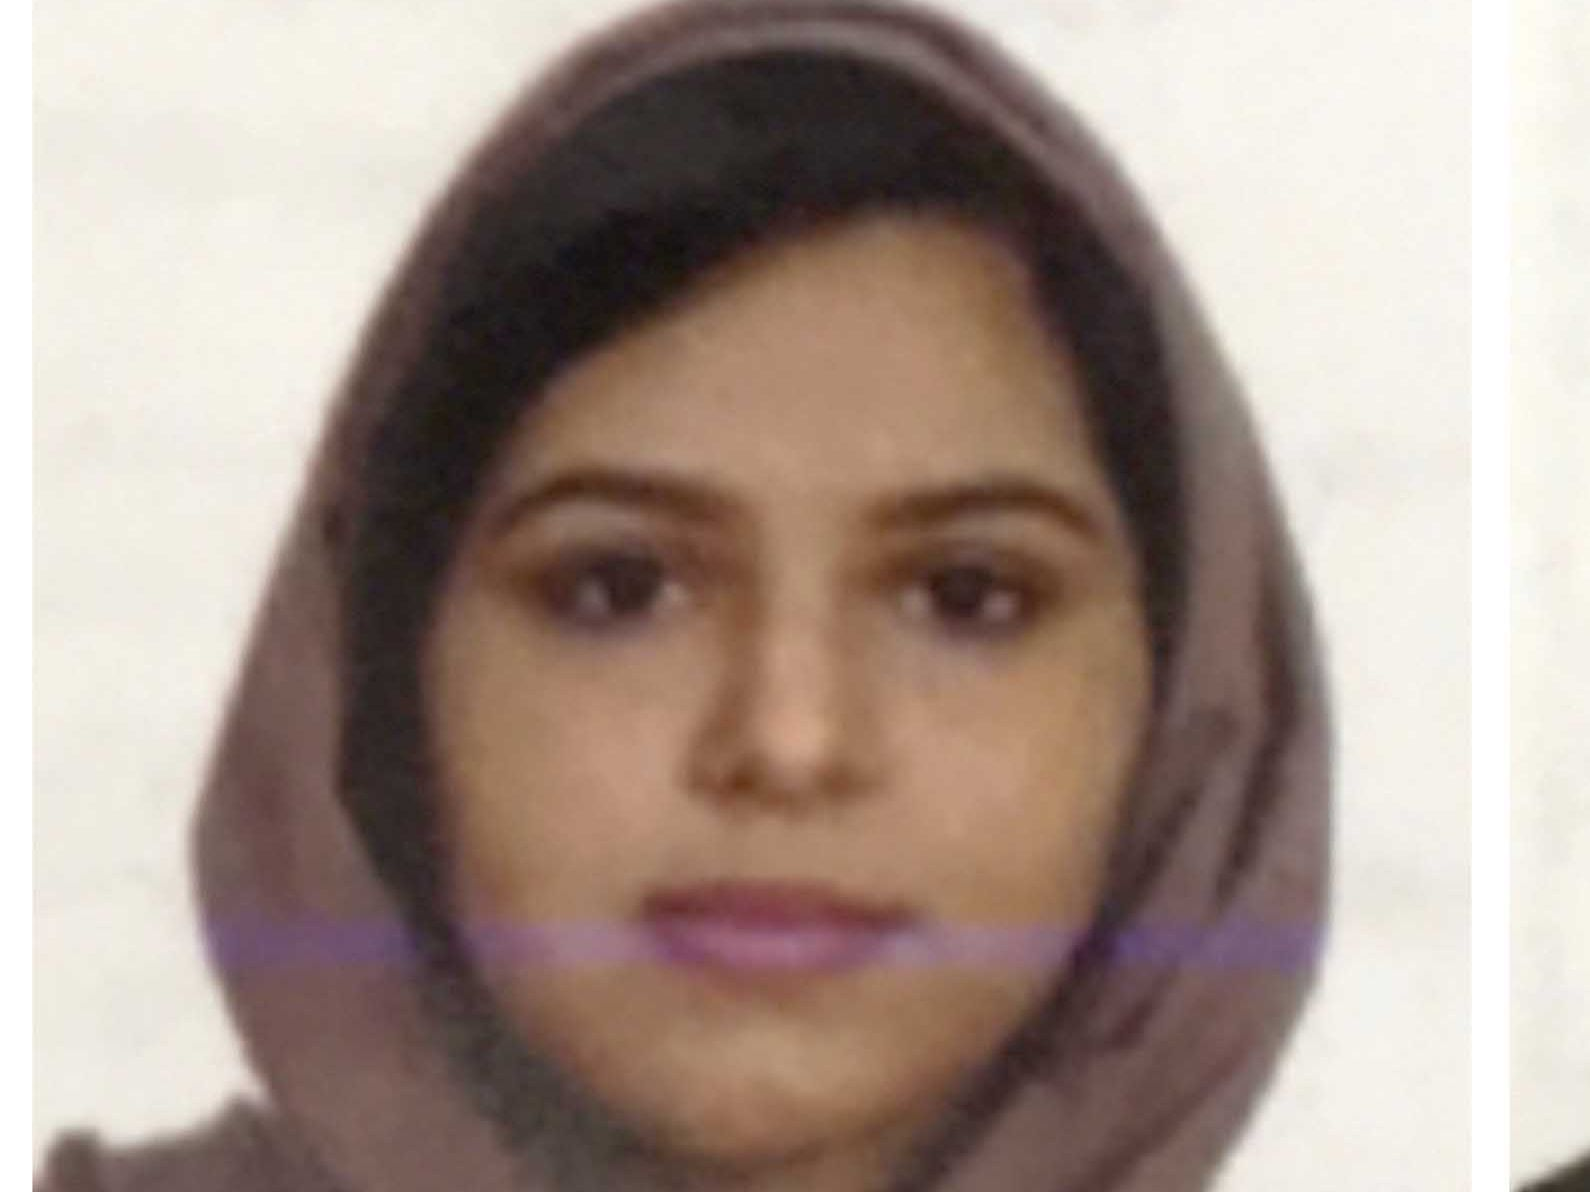 Saudi sisters drowned themselves in Hudson River, medical examiner says